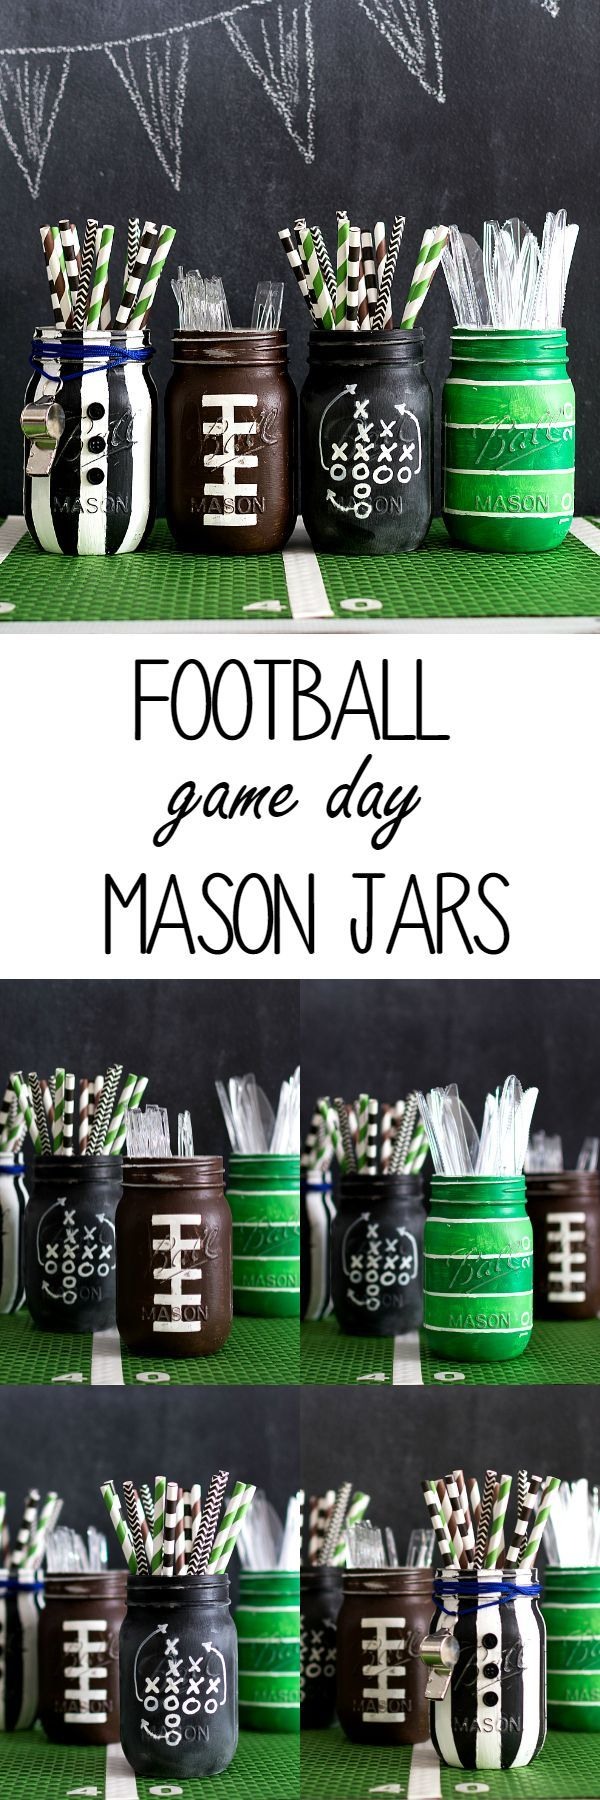 The perfect party decor for a game day celebration!